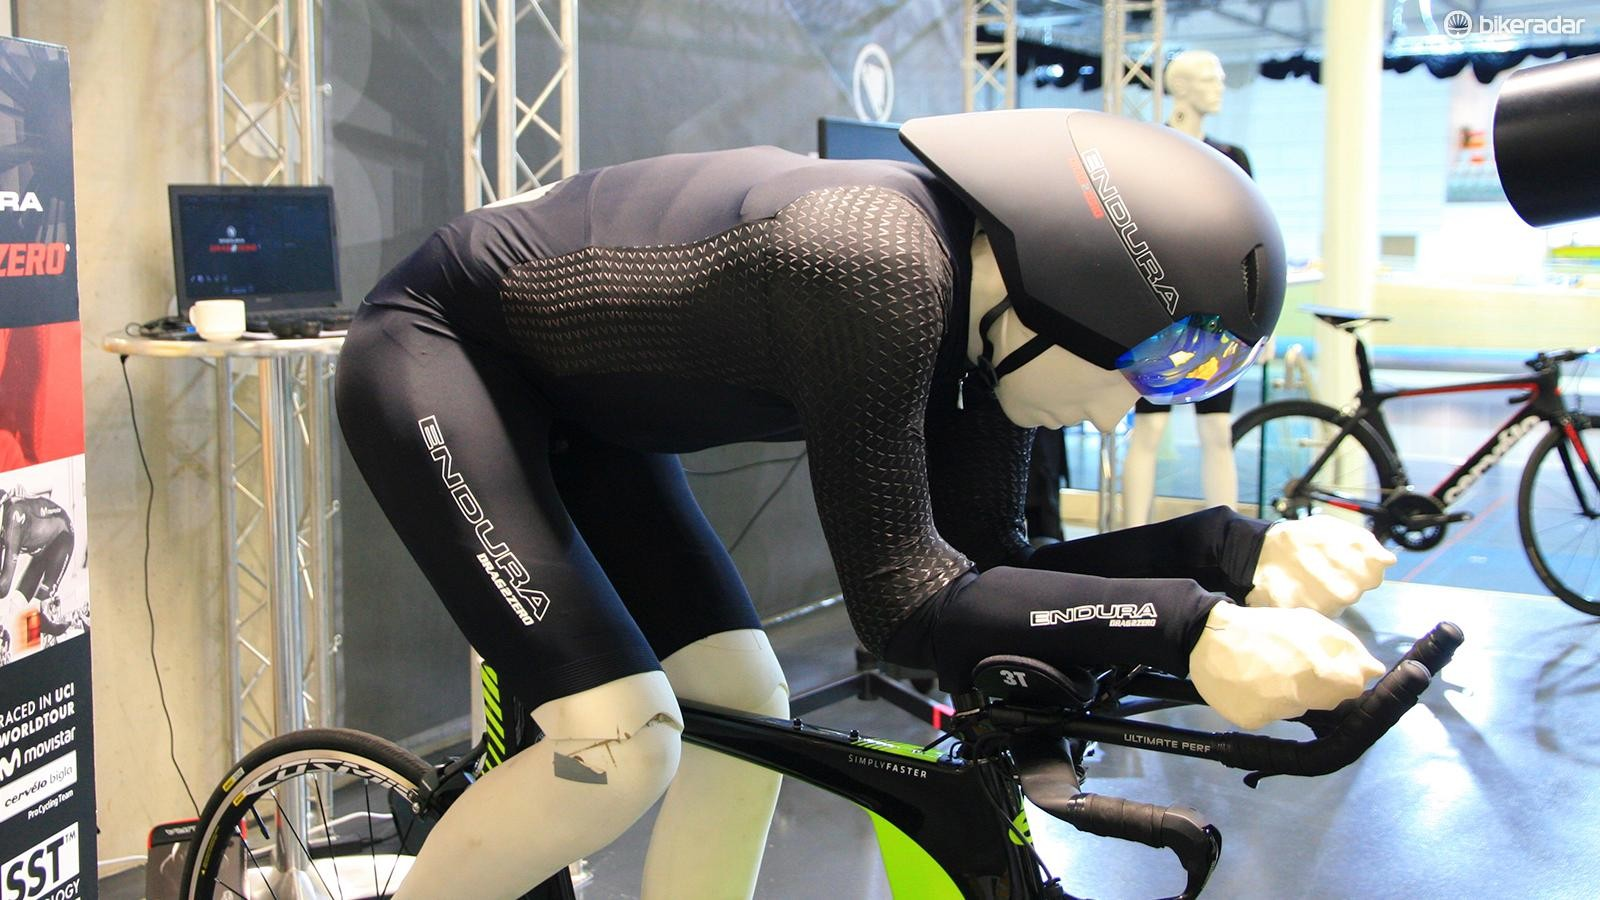 Four million data points were used in the scan of Alex Dowsett to create a life-like mannequin, for those times when he wasn't available